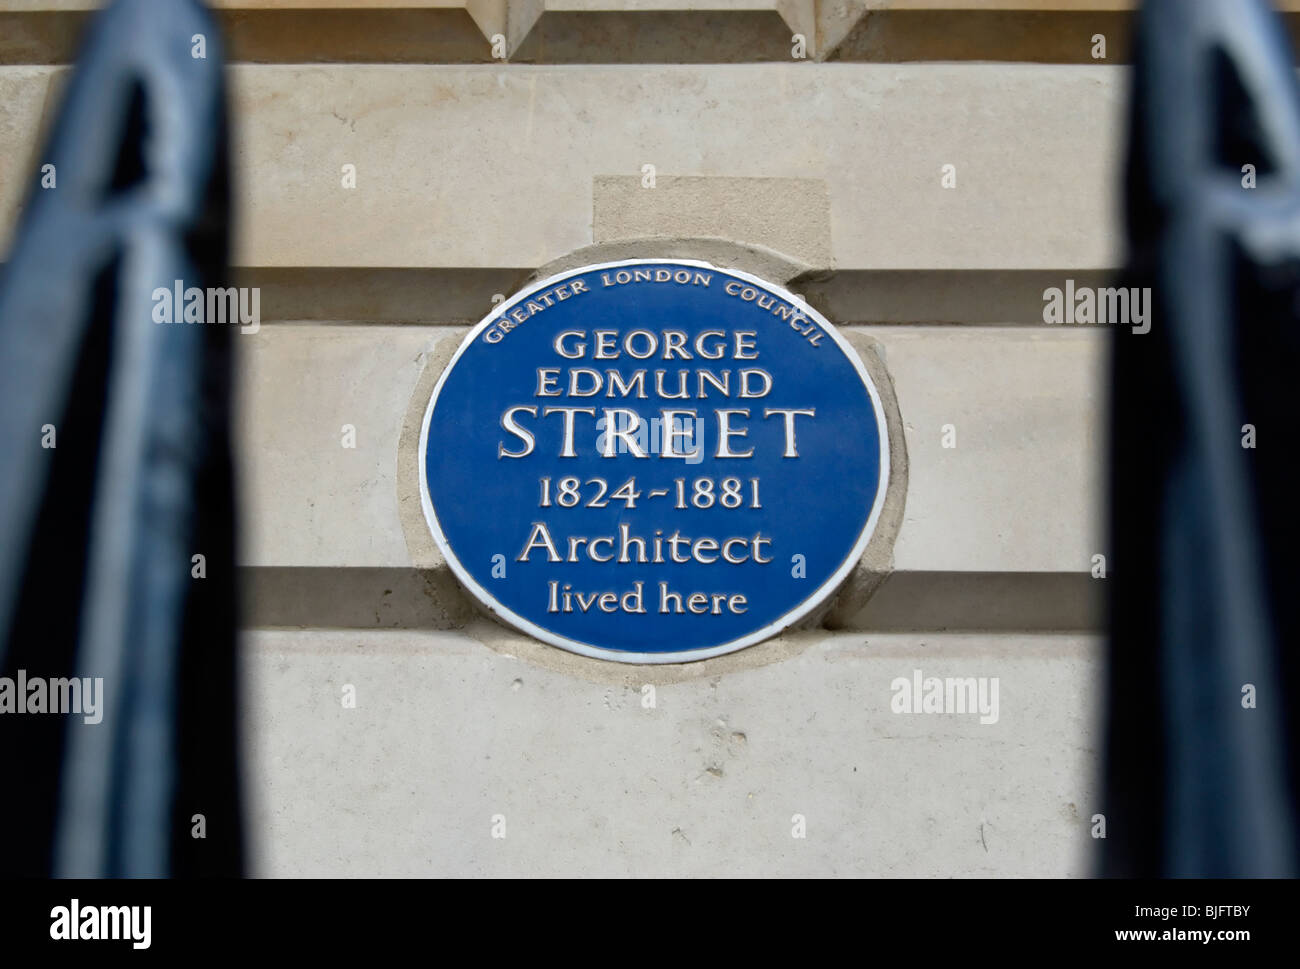 greater london council blue plaque marking a home of architect george edmund  street, in cavendish place, london Stock Photo